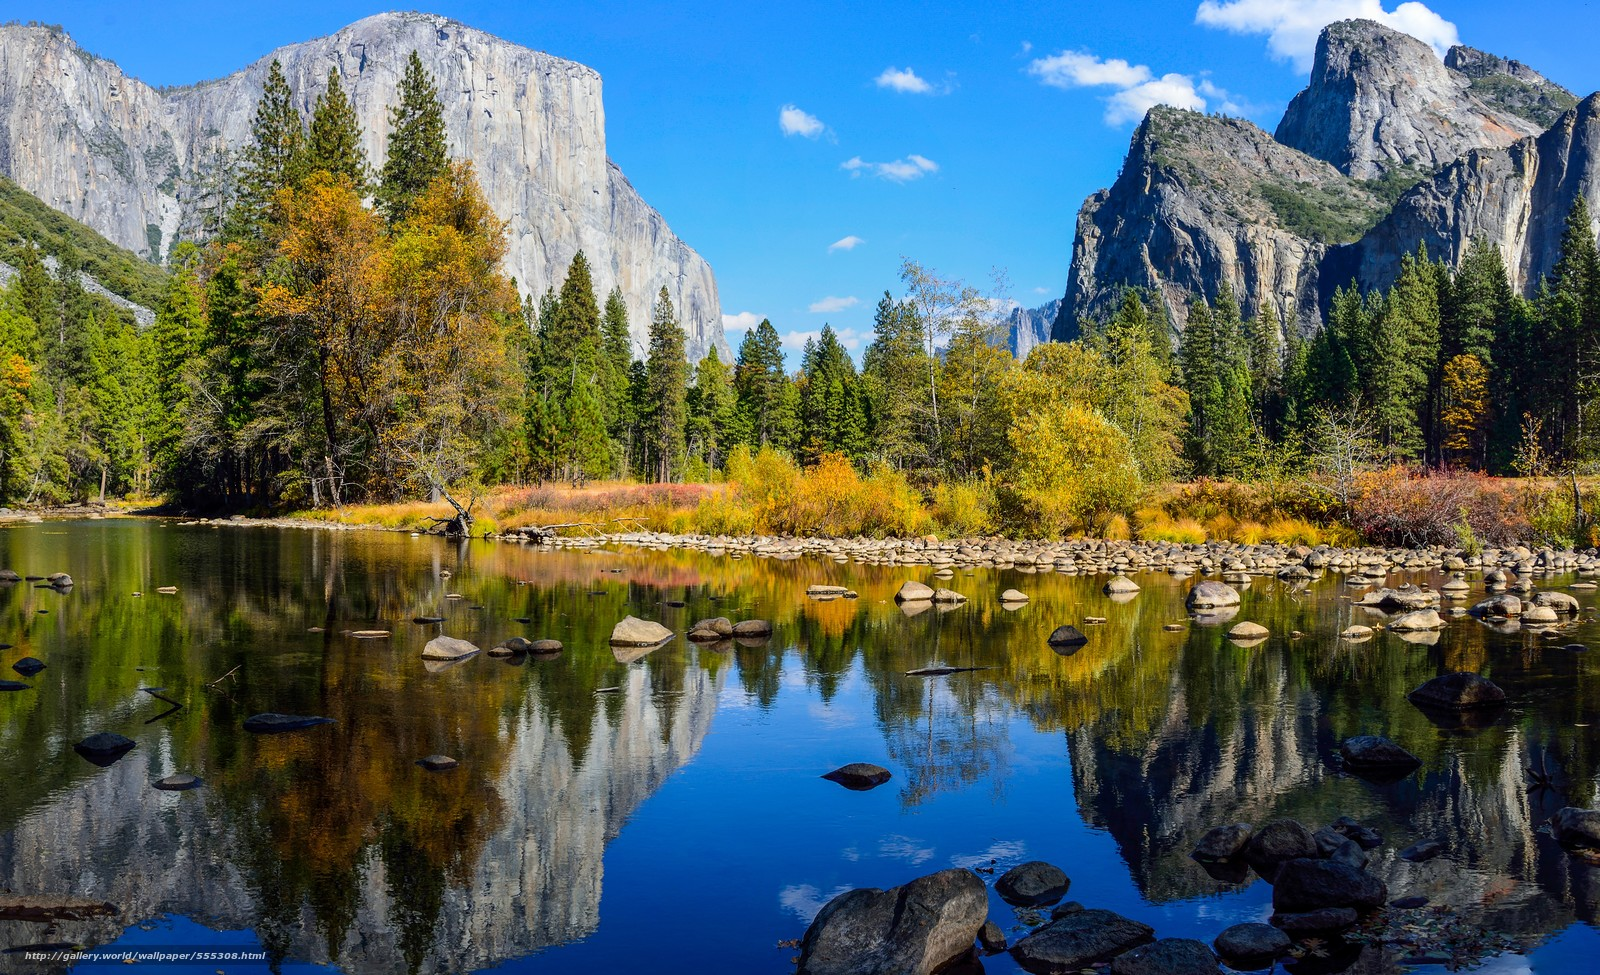 Download wallpaper Yosemite National Park river Mountains Rocks 1600x975